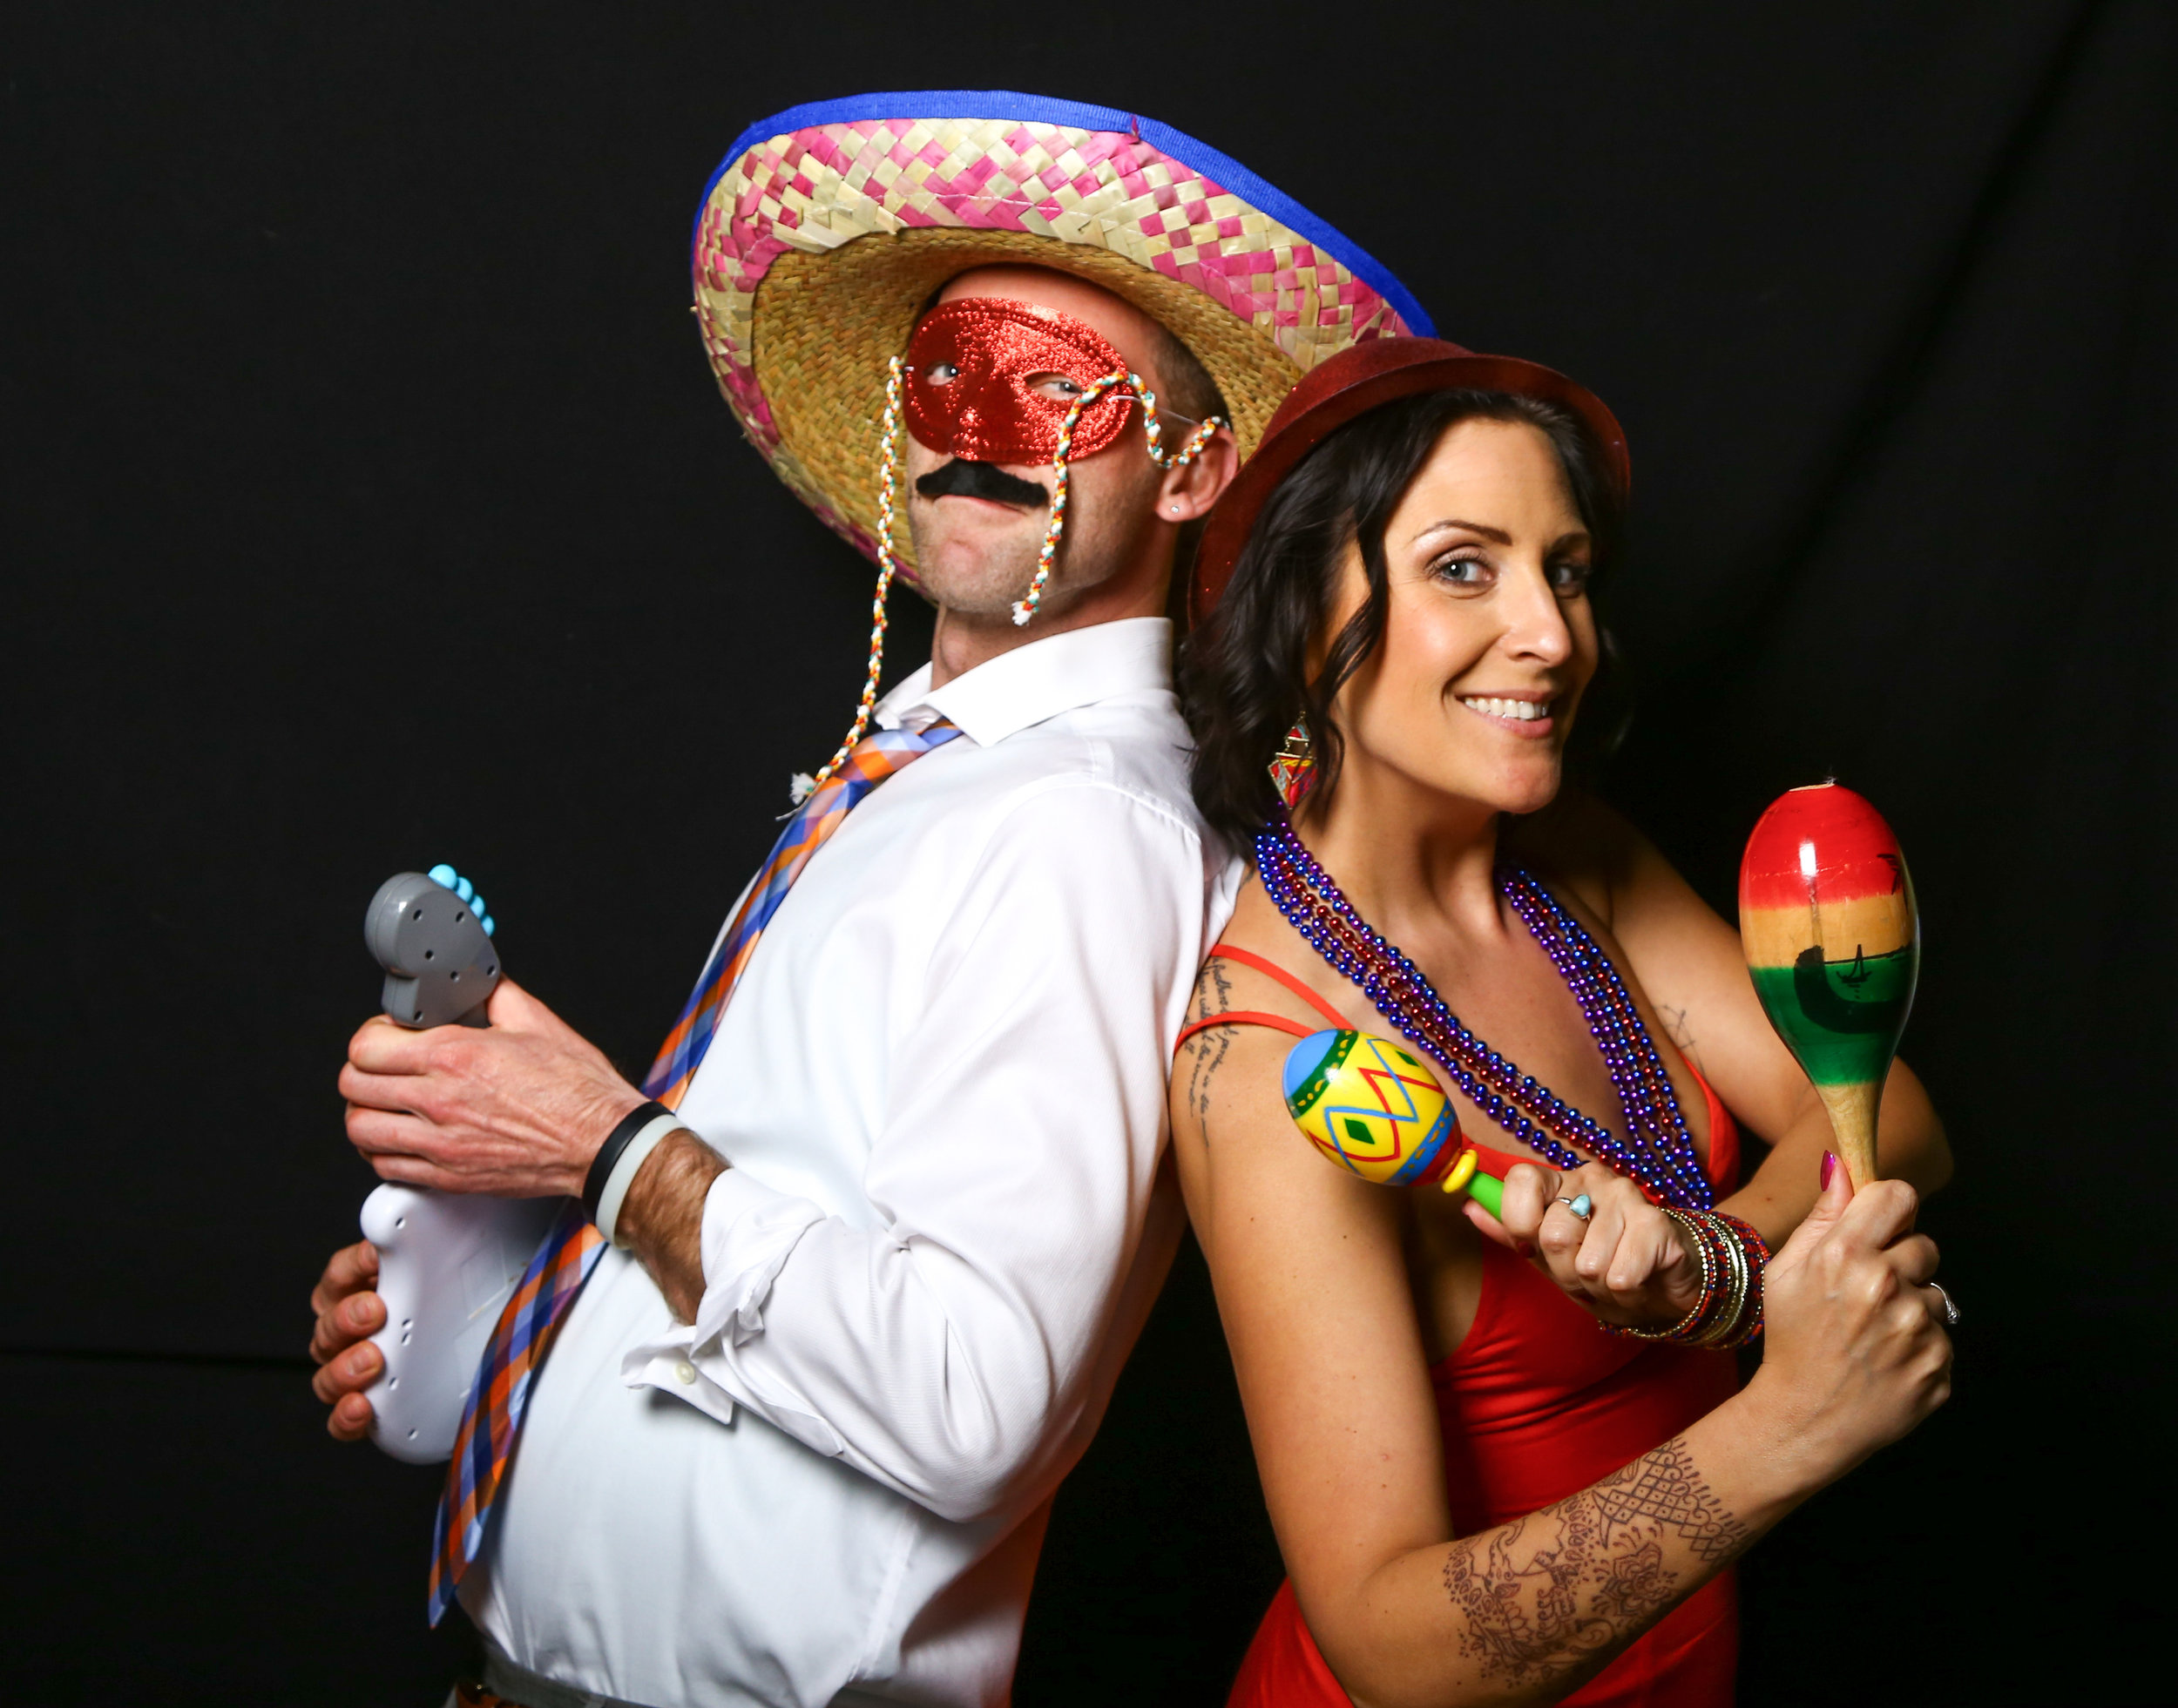 Looking for a photobooth? -